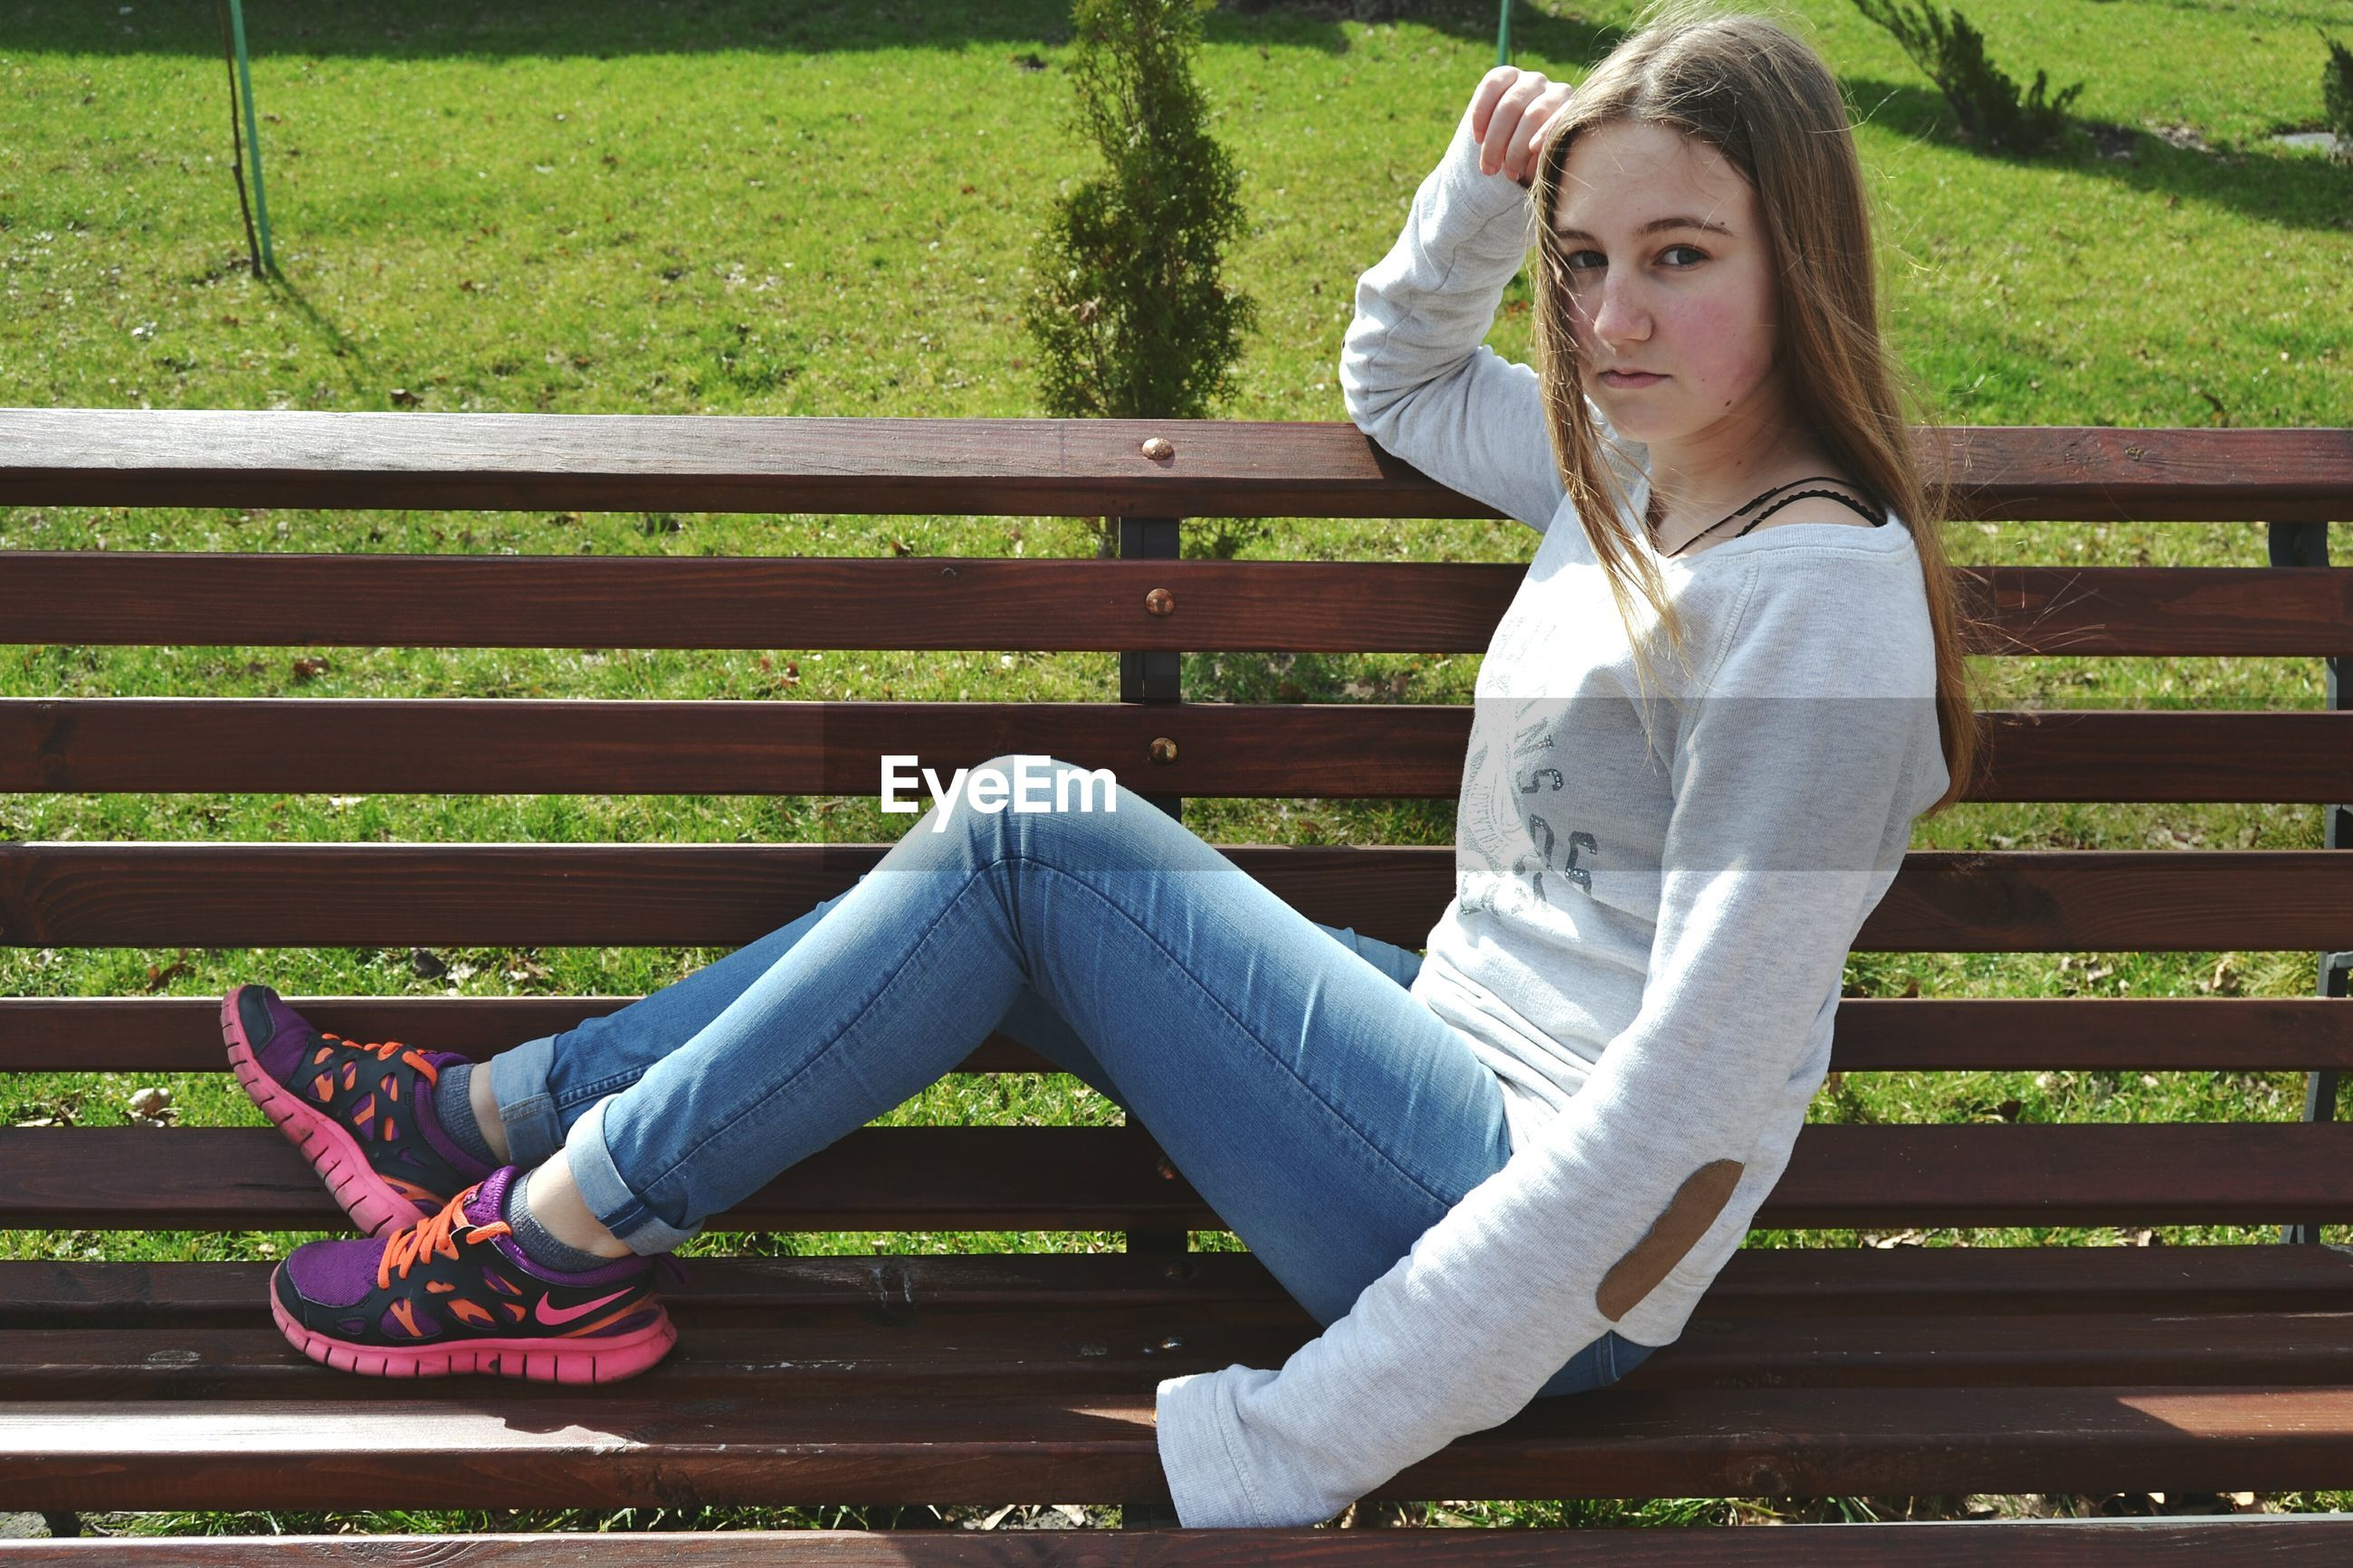 sitting, jeans, contemplation, casual clothing, young adult, young women, one person, women, day dreaming, outdoors, adult, people, day, adults only